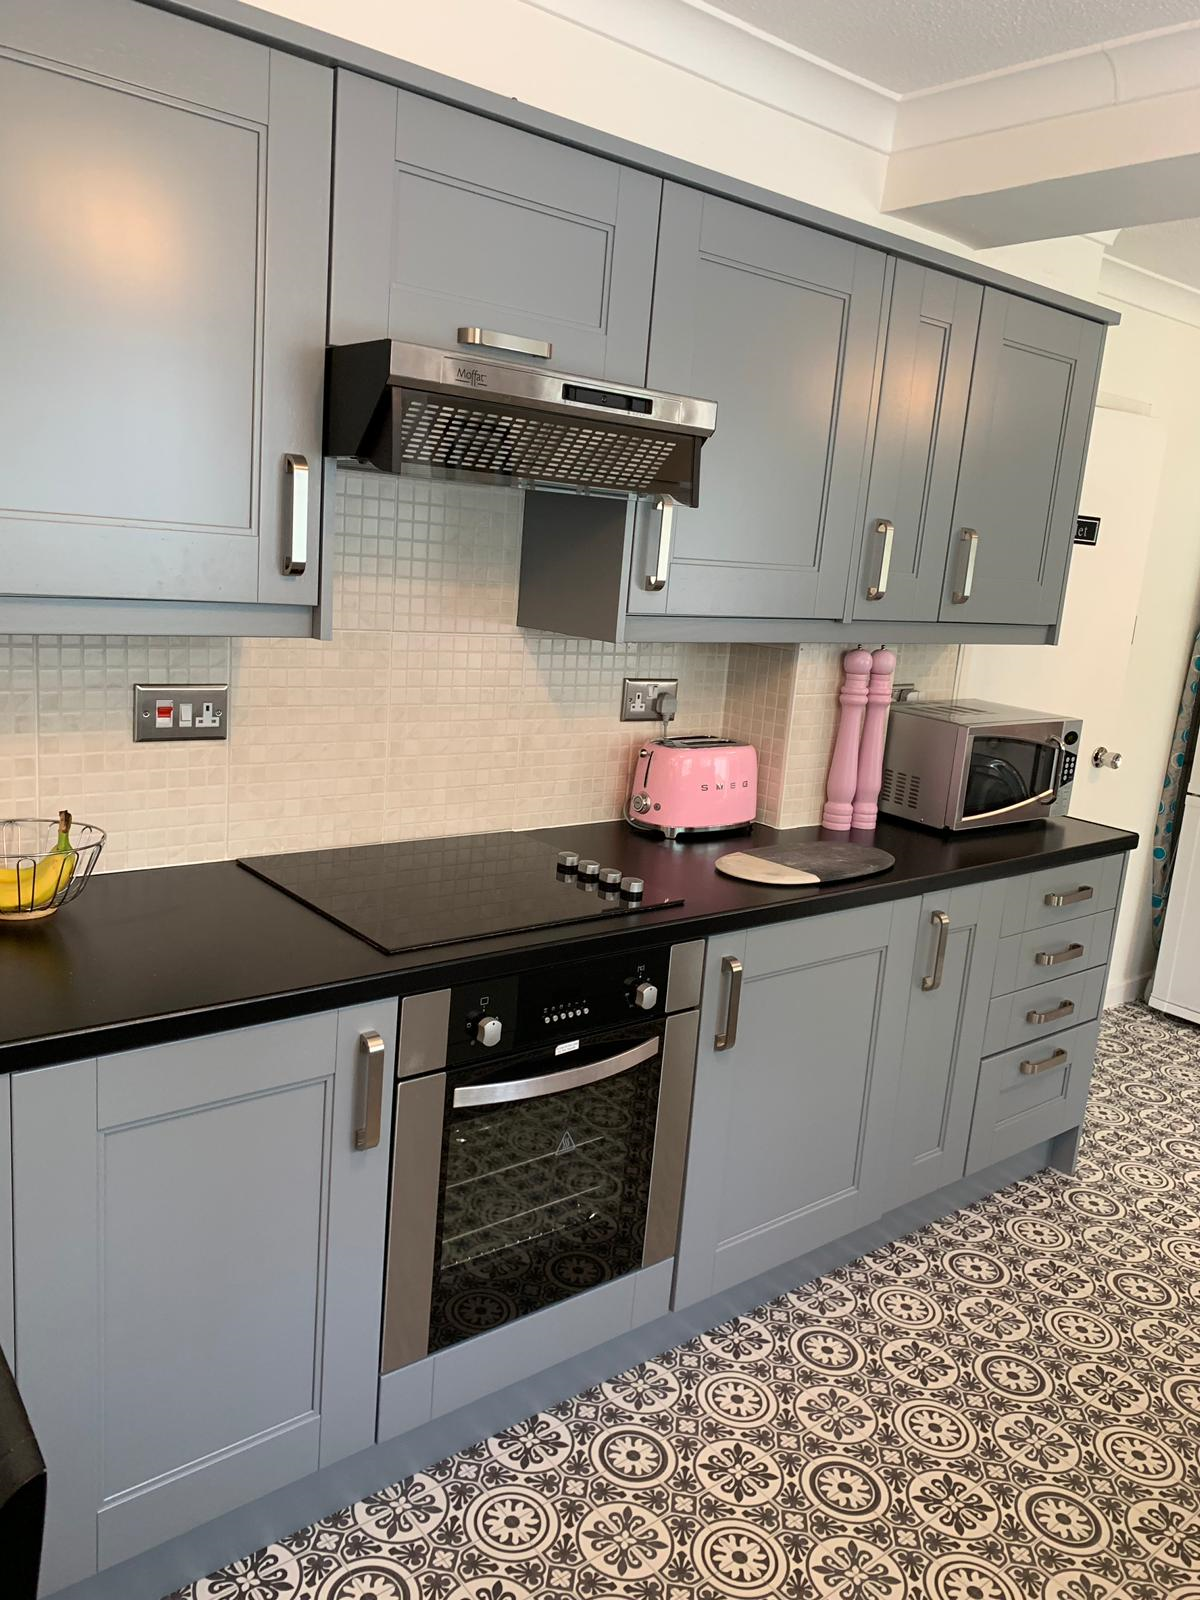 Make your old run down kitchen look brand new again ...